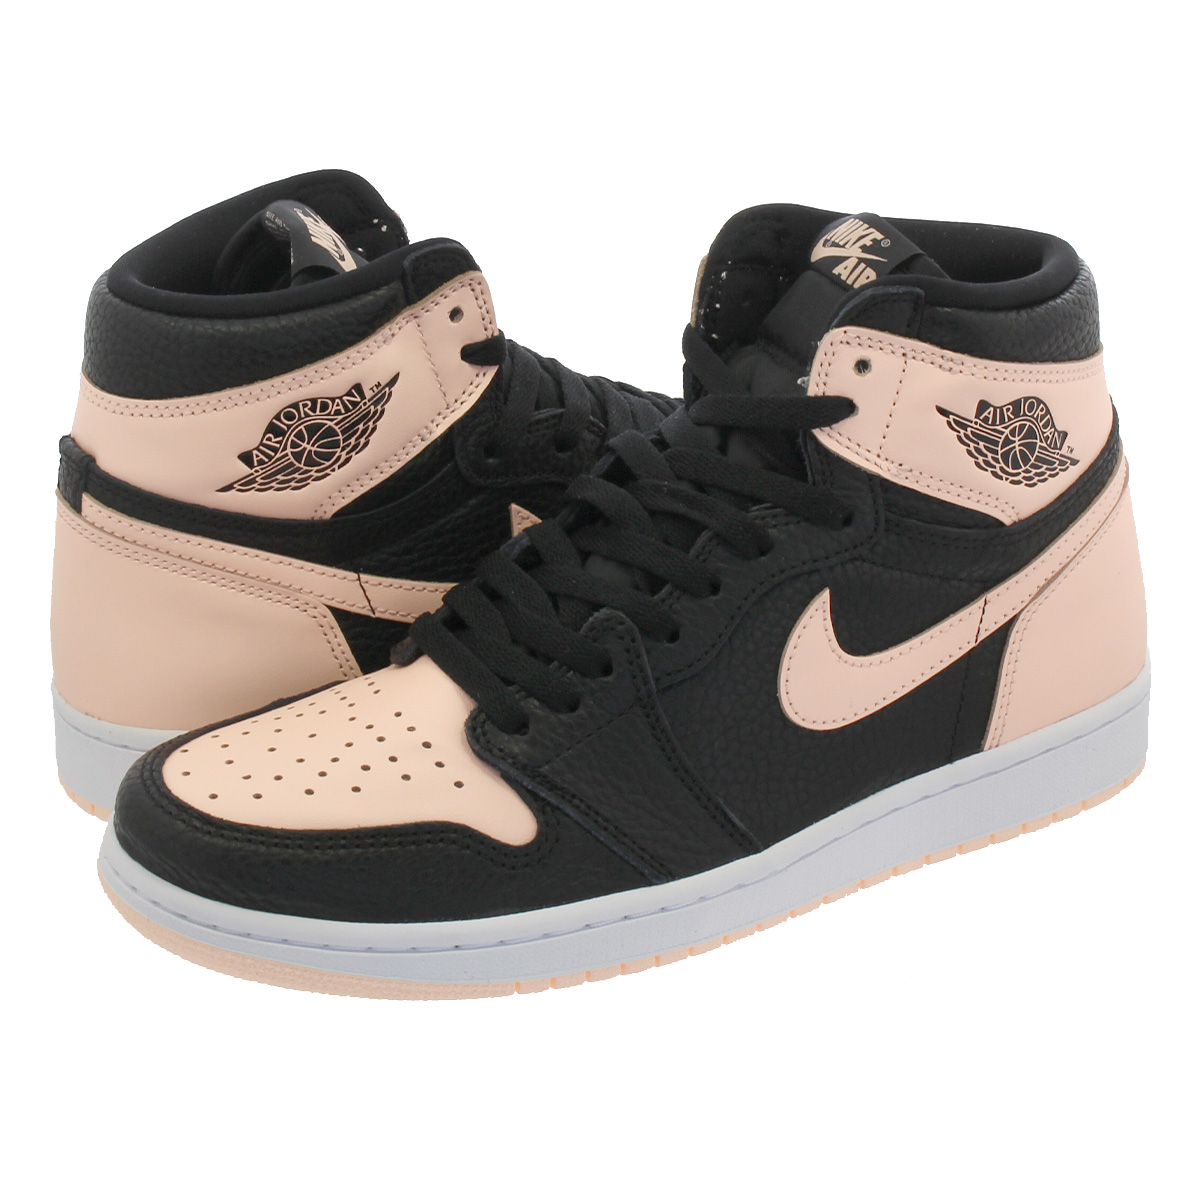 dfadbb8a0f9 NIKE AIR JORDAN 1 RETRO HIGH OG Nike Air Jordan 1 nostalgic high OG BLACK/  ...